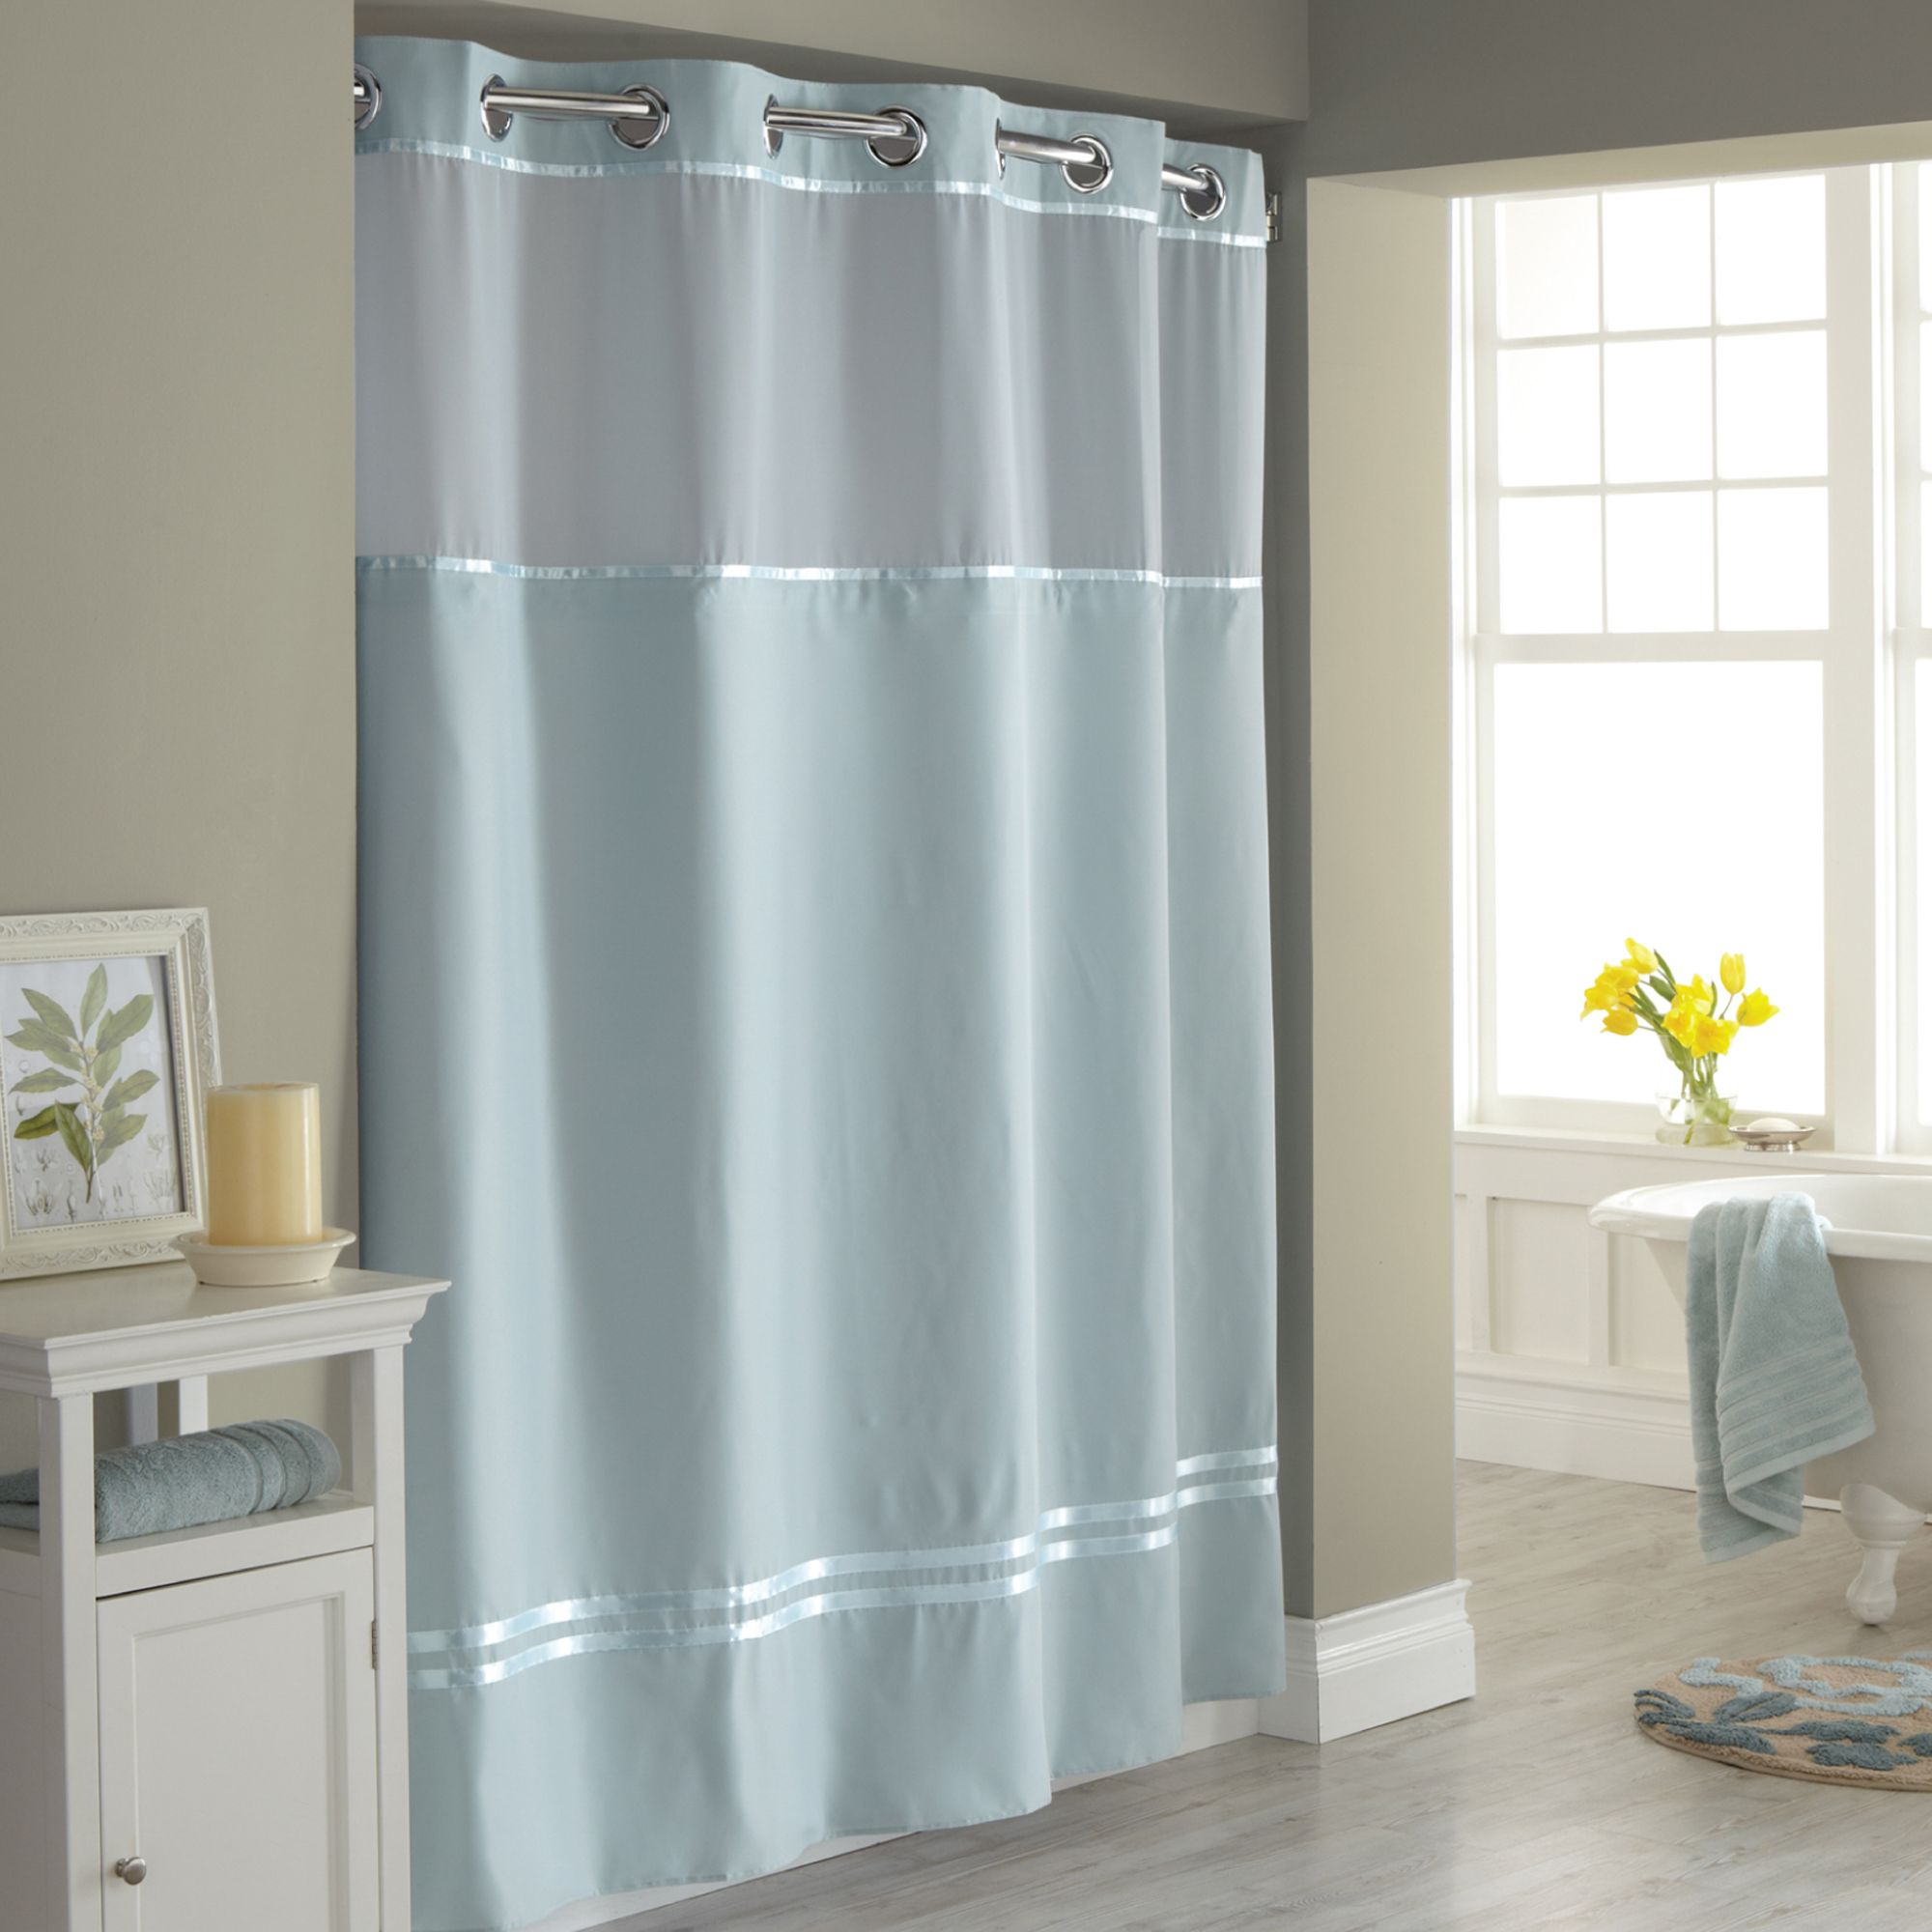 hookless escape fabric shower curtain and shower curtain liner hookless reg escape fabric shower curtain and shower curtain liner set